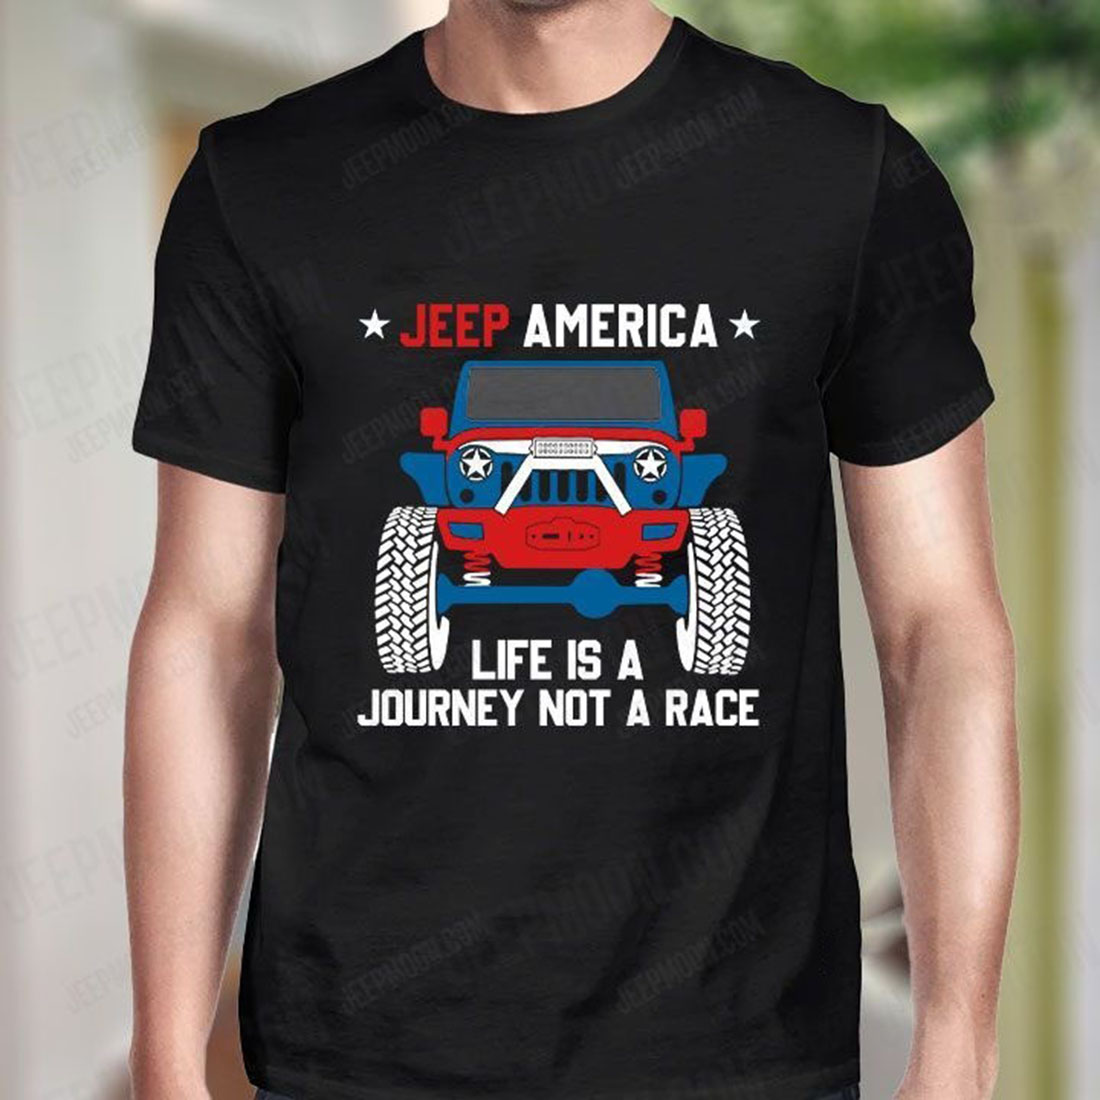 Jeep-America-Life-is-a-journey-not-a-race-shirt -1